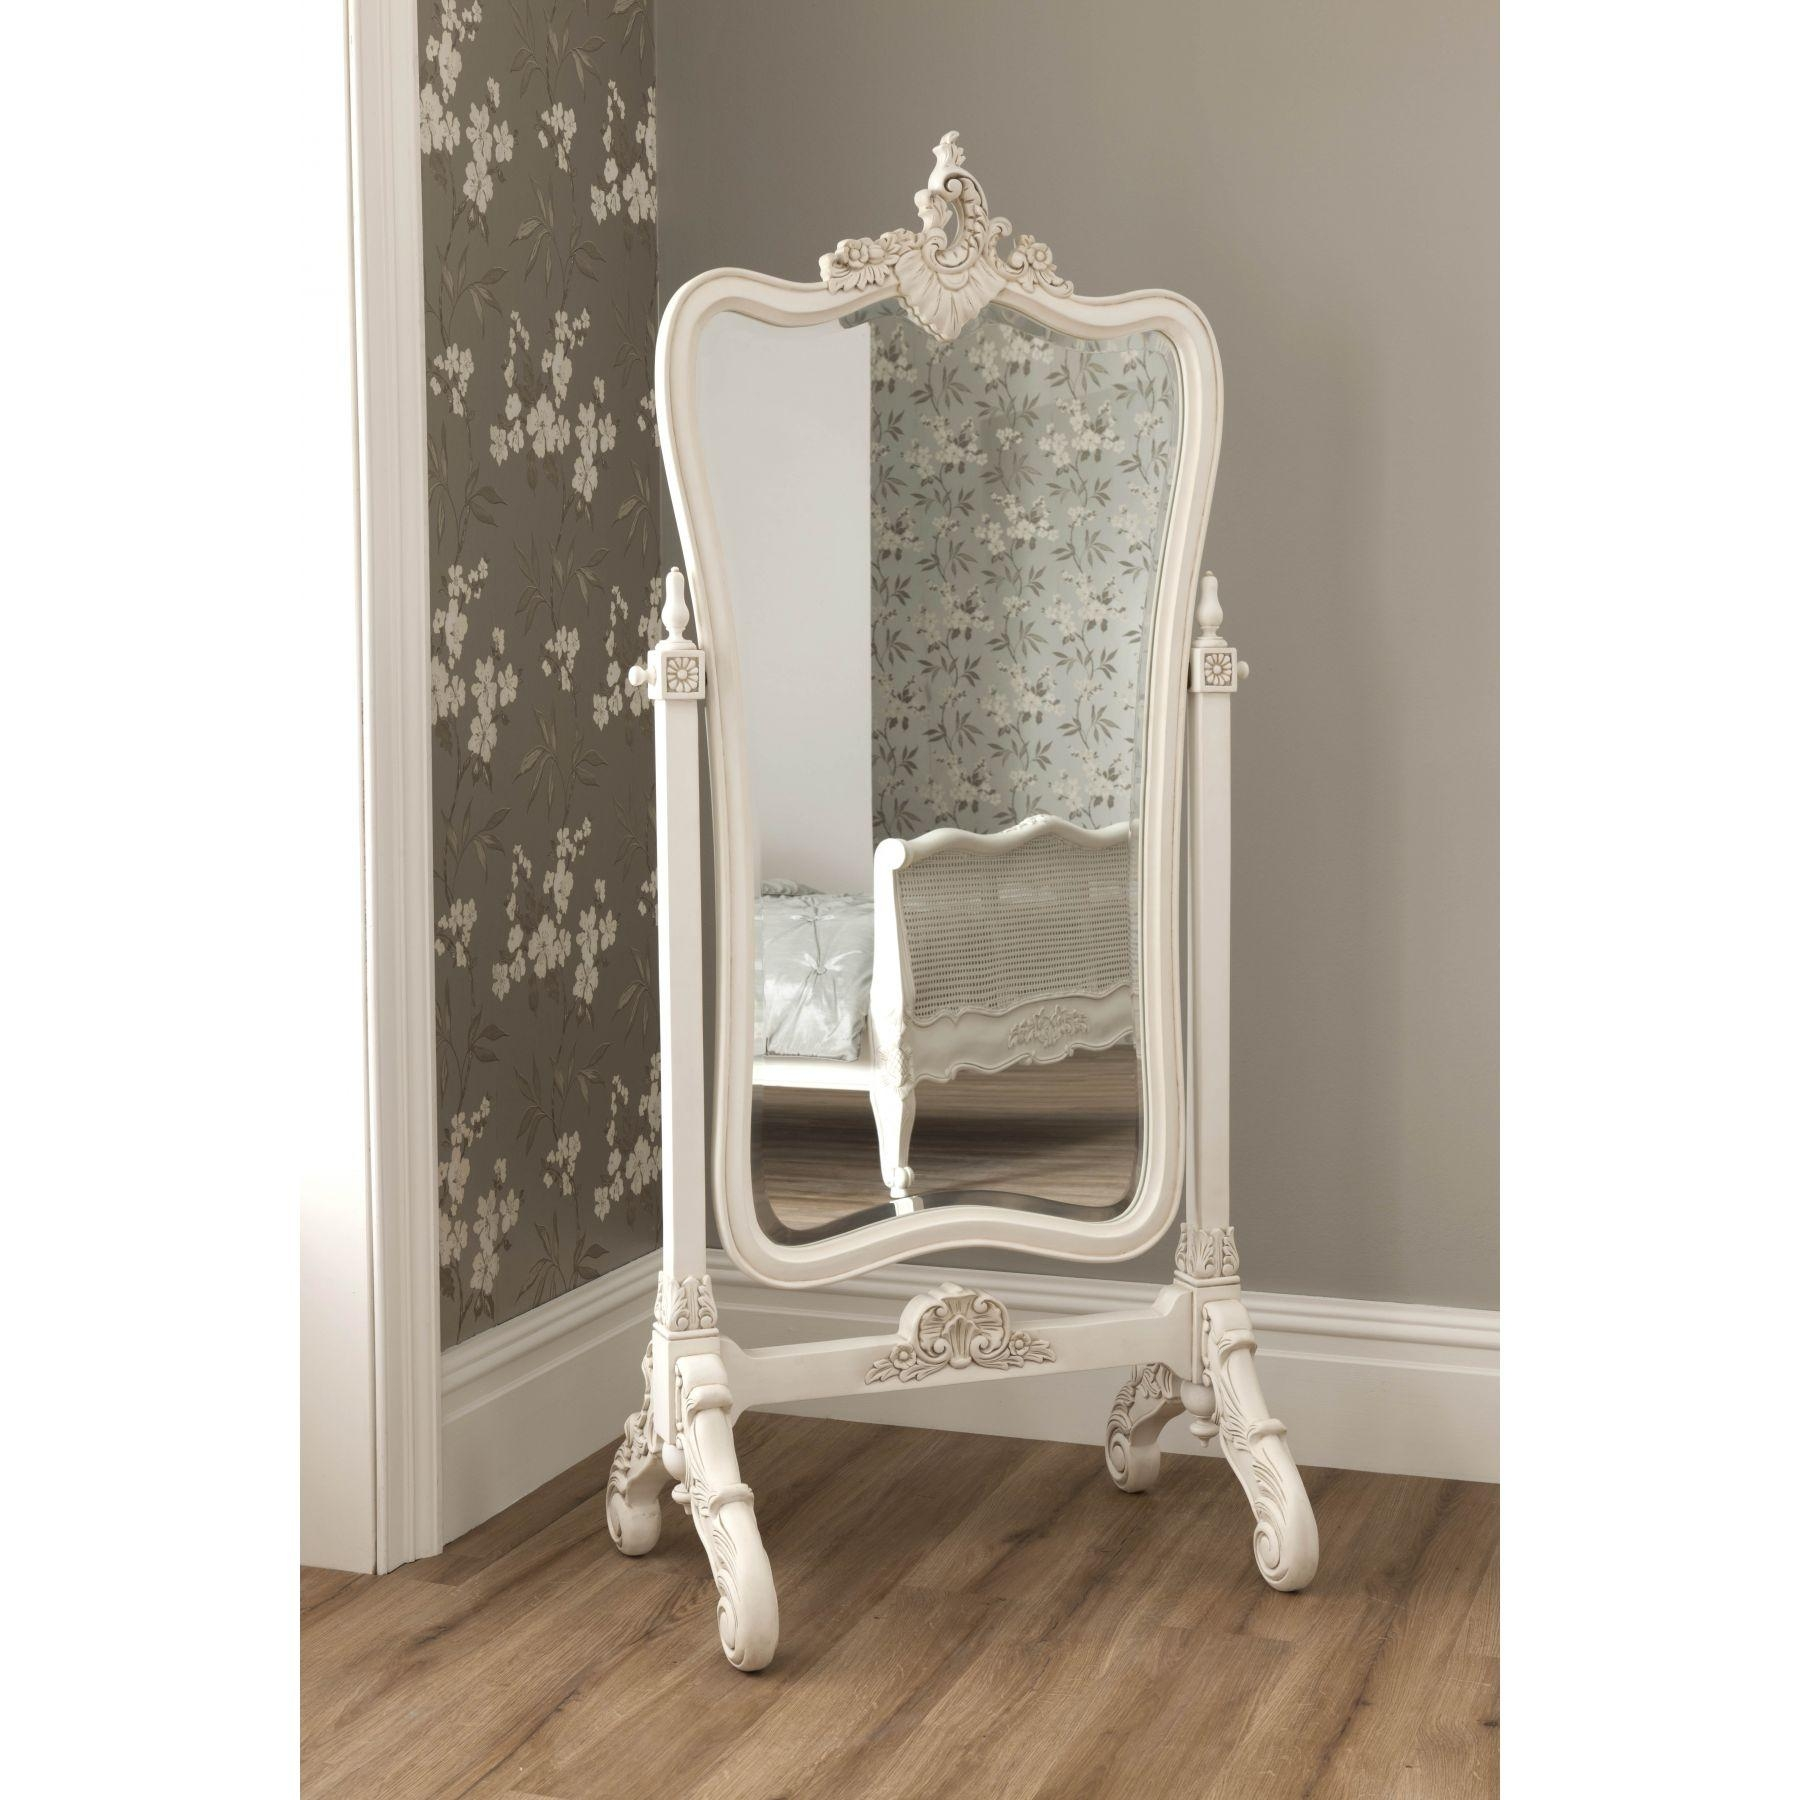 Decorating: Wrought Iron Cheval Mirror With Wooden Floor And Cream Regarding Cream Cheval Mirror (View 2 of 20)